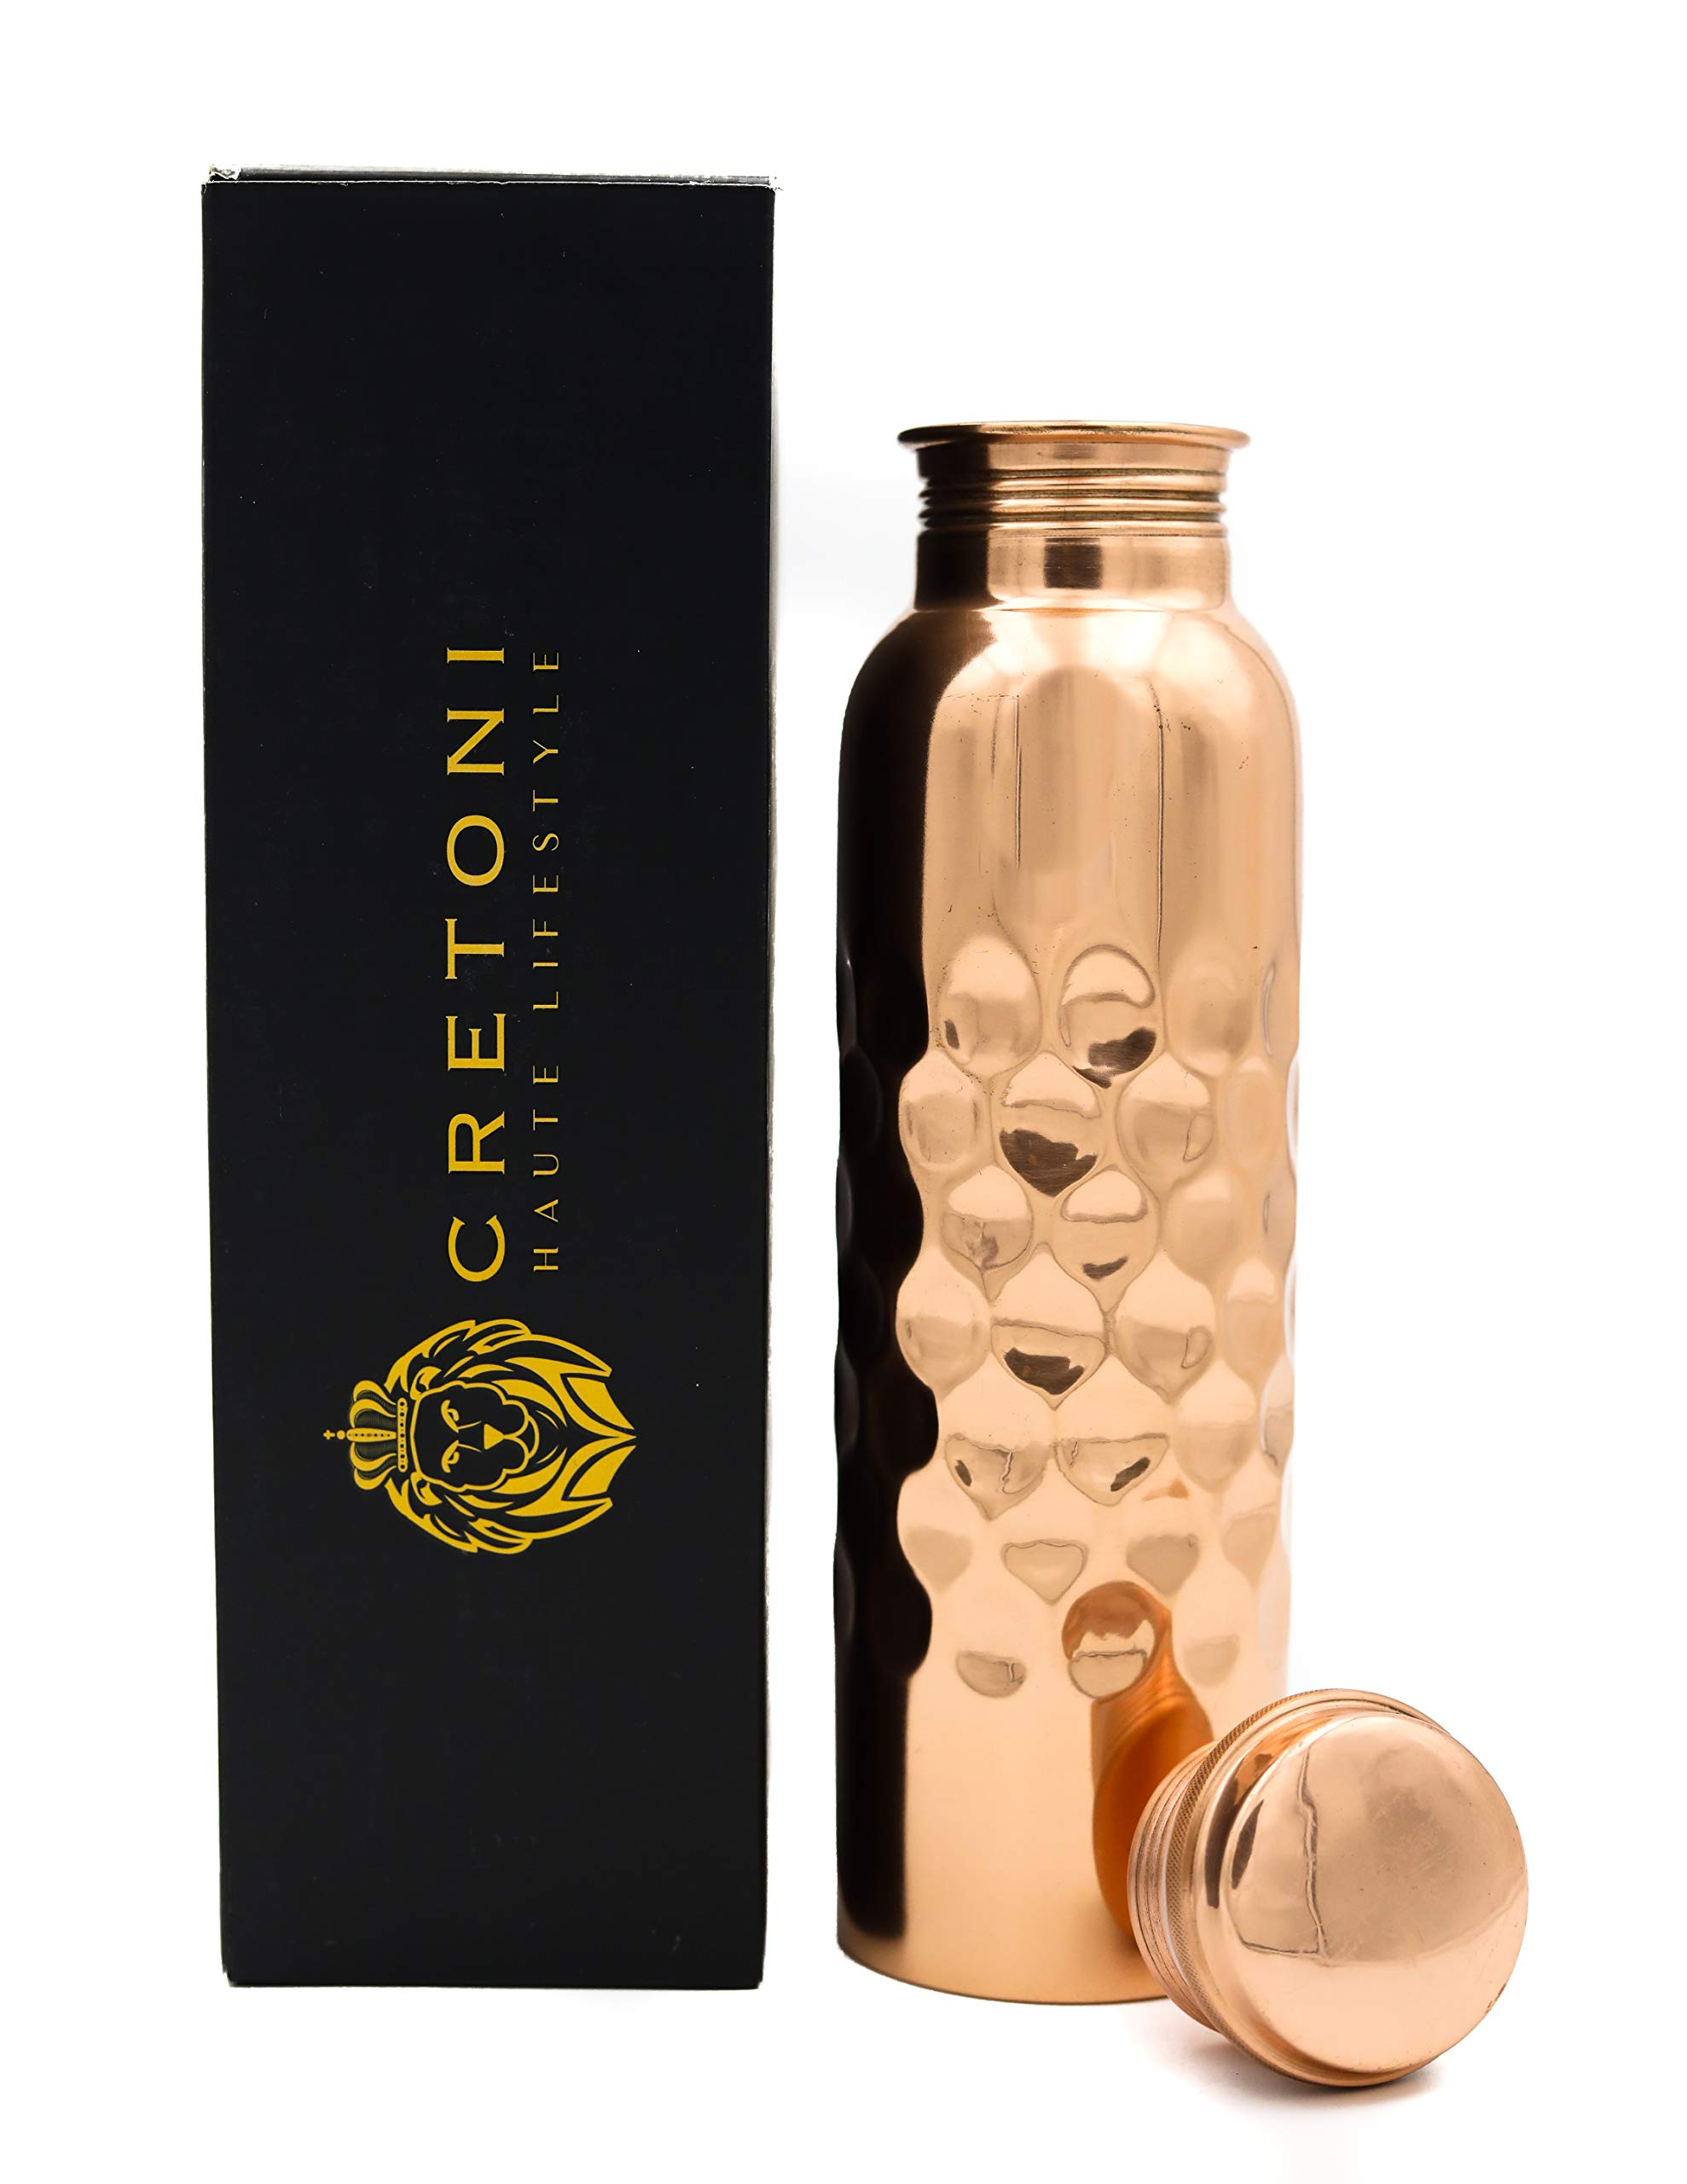 Cretoni Copperlin Pure Copper Water Bottle : Smooth Honeycomb Seemless Leak Proof Design : Perfect Ayurvedic Copper Vessel for Sports, Fitness, Yoga, Natural Health Benefits (900 Milliliter/30 Ounce)